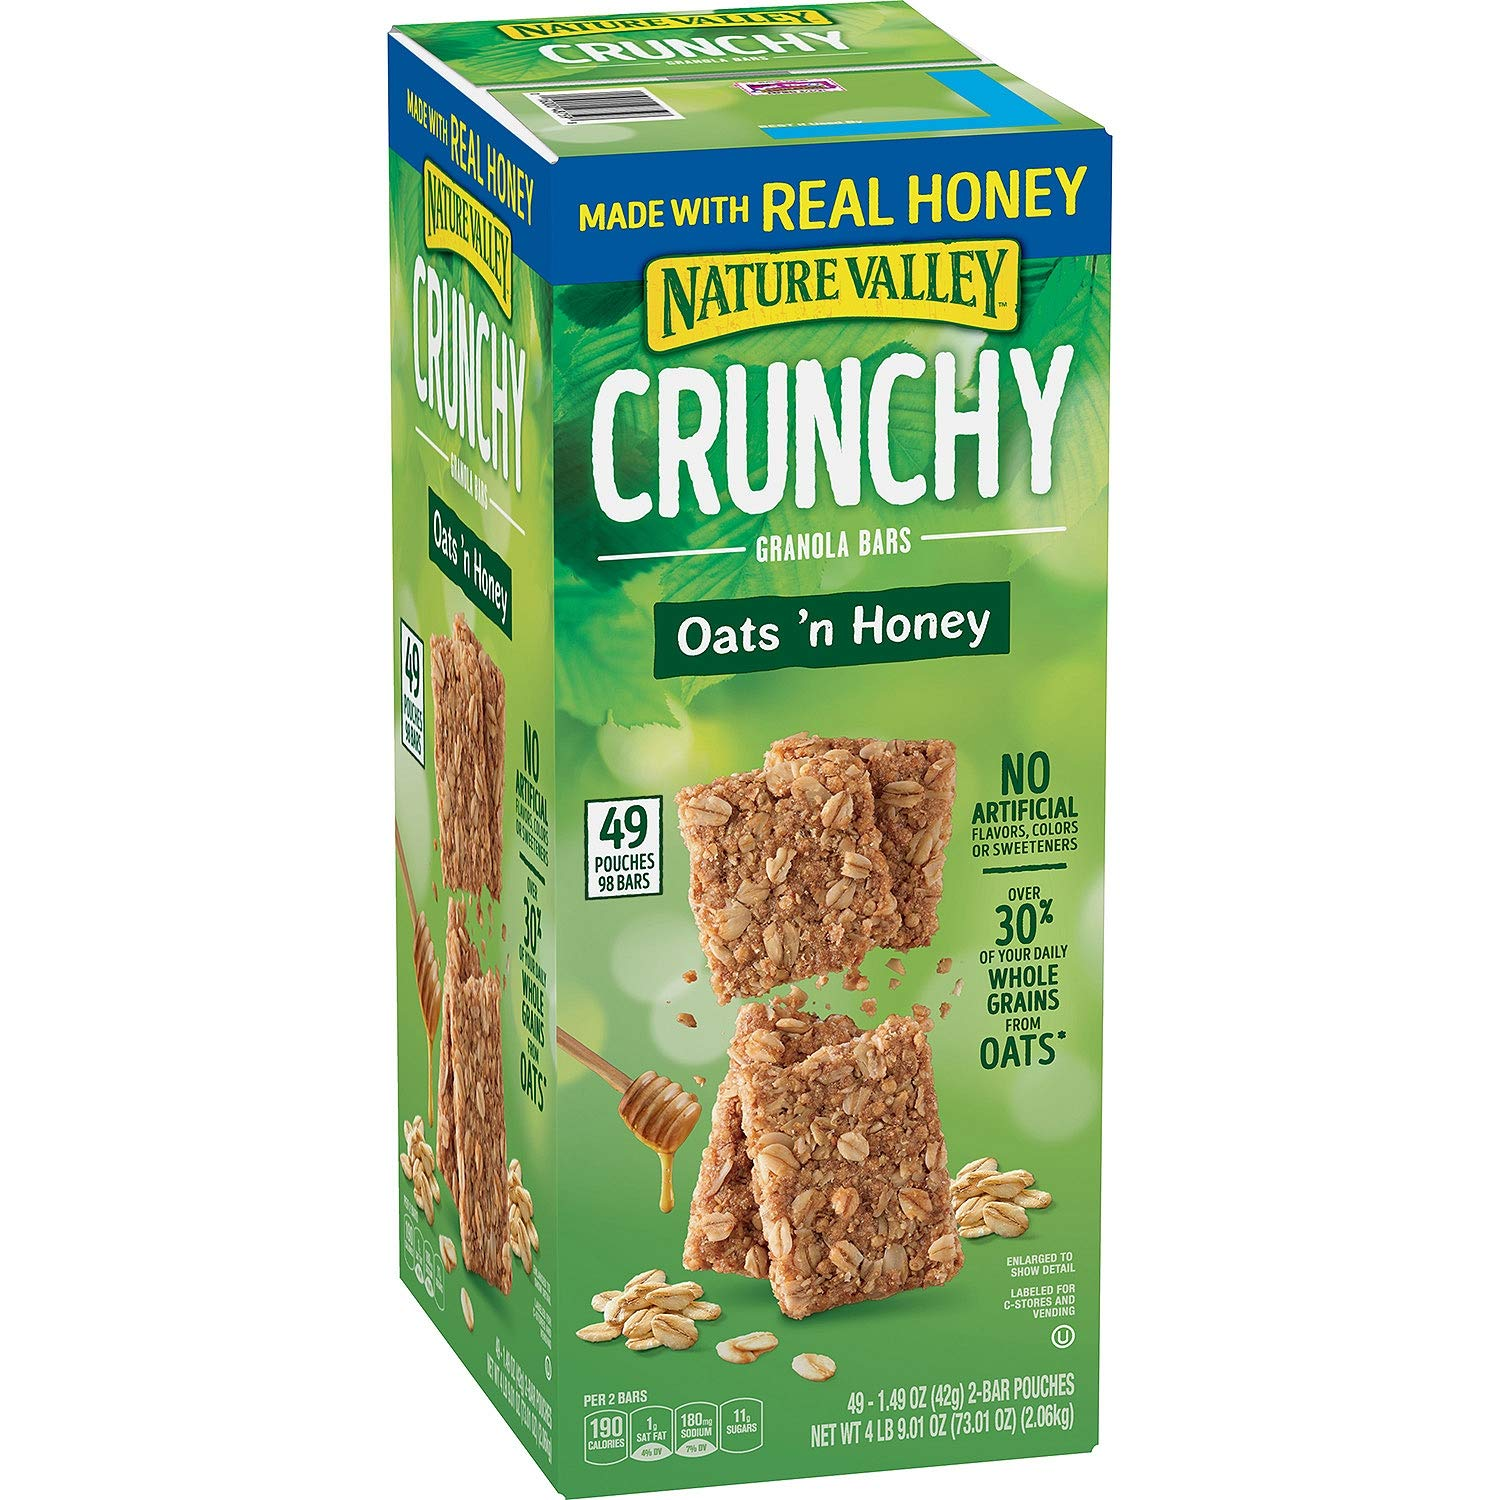 Nature Valley Crunchy Granola Bars Oats 'N Honey - 98 Bars Of 2 bar Pouches of 49ct-1.49oz